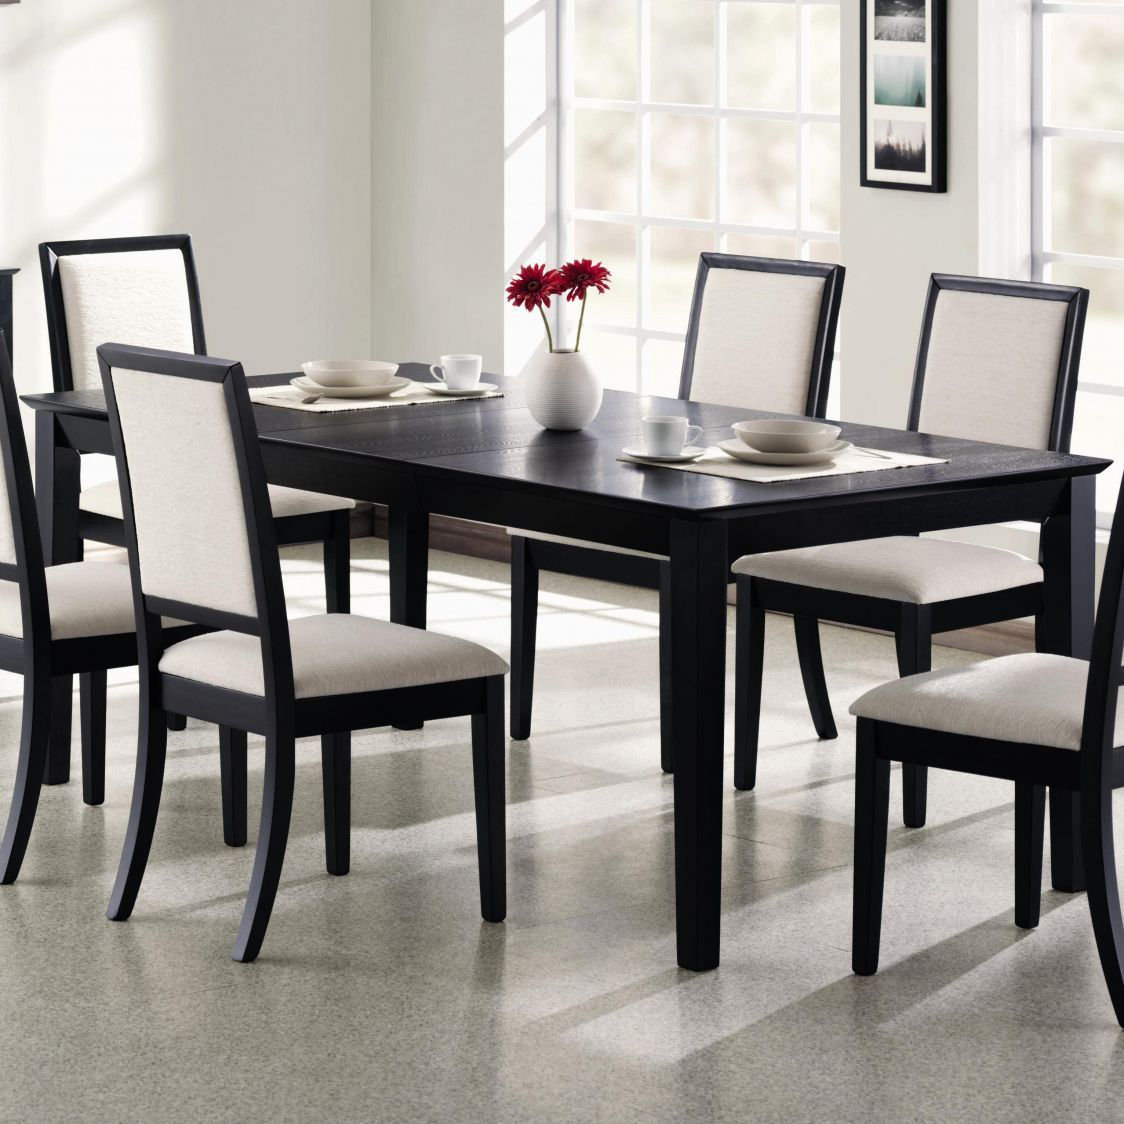 Black Lacquer Dining Room Chairs   Best Way To Paint Furniture Check More  At Http: